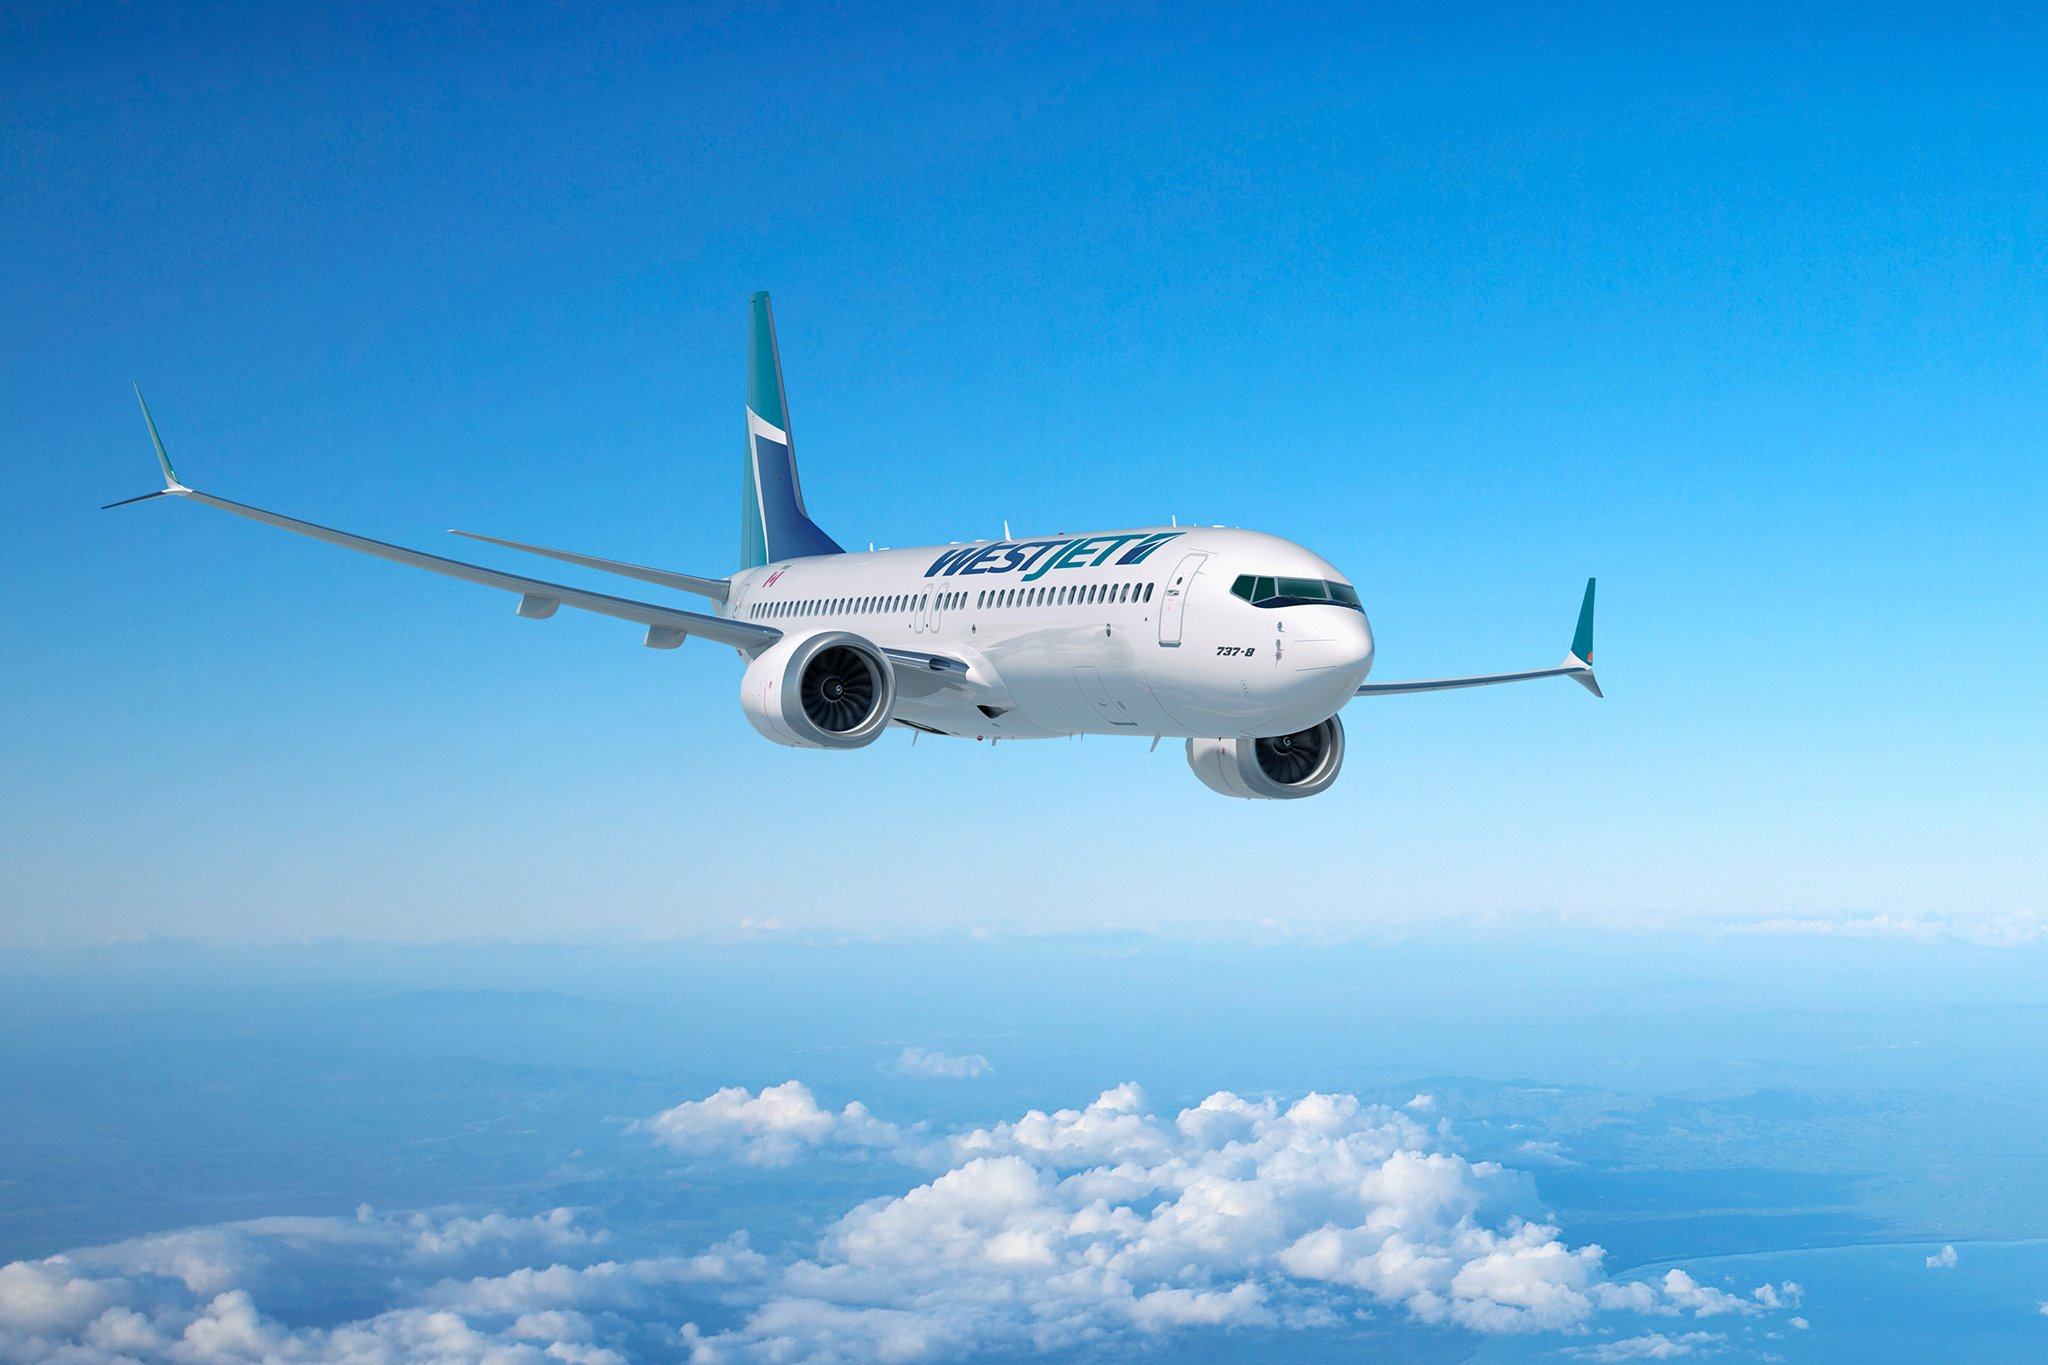 There are days however when WestJet seat sales can be a bit harder to find. While there are over a hundred seat sales each day, finding the perfect seat sale to the city you want and at your preferred time is not always desiredcameras.tkt seat sales.